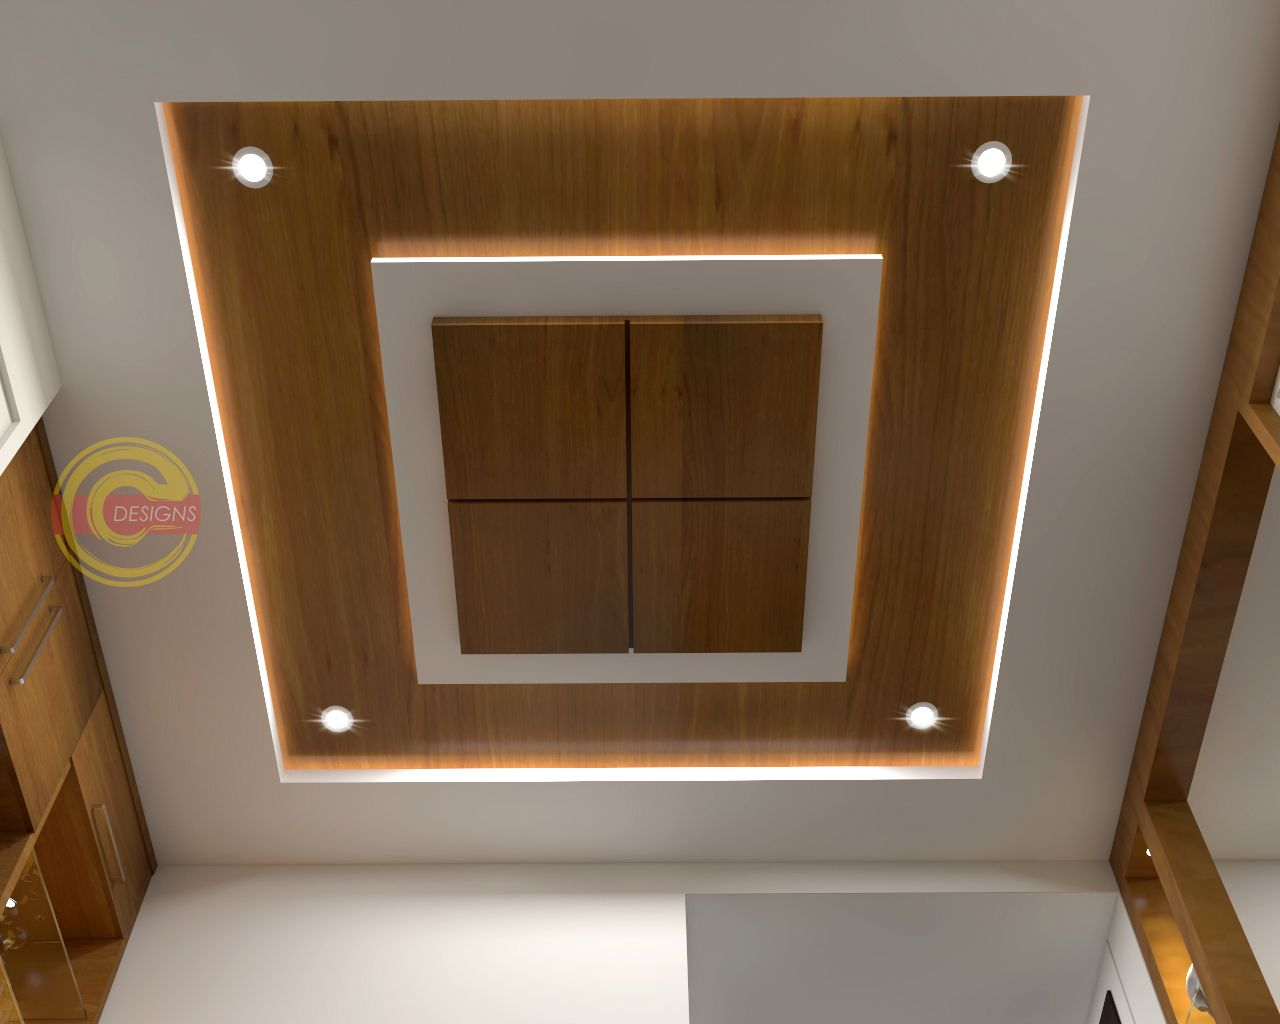 Fall Ceiling Designs Concepts | 3D Concepts in 2020 (With ...